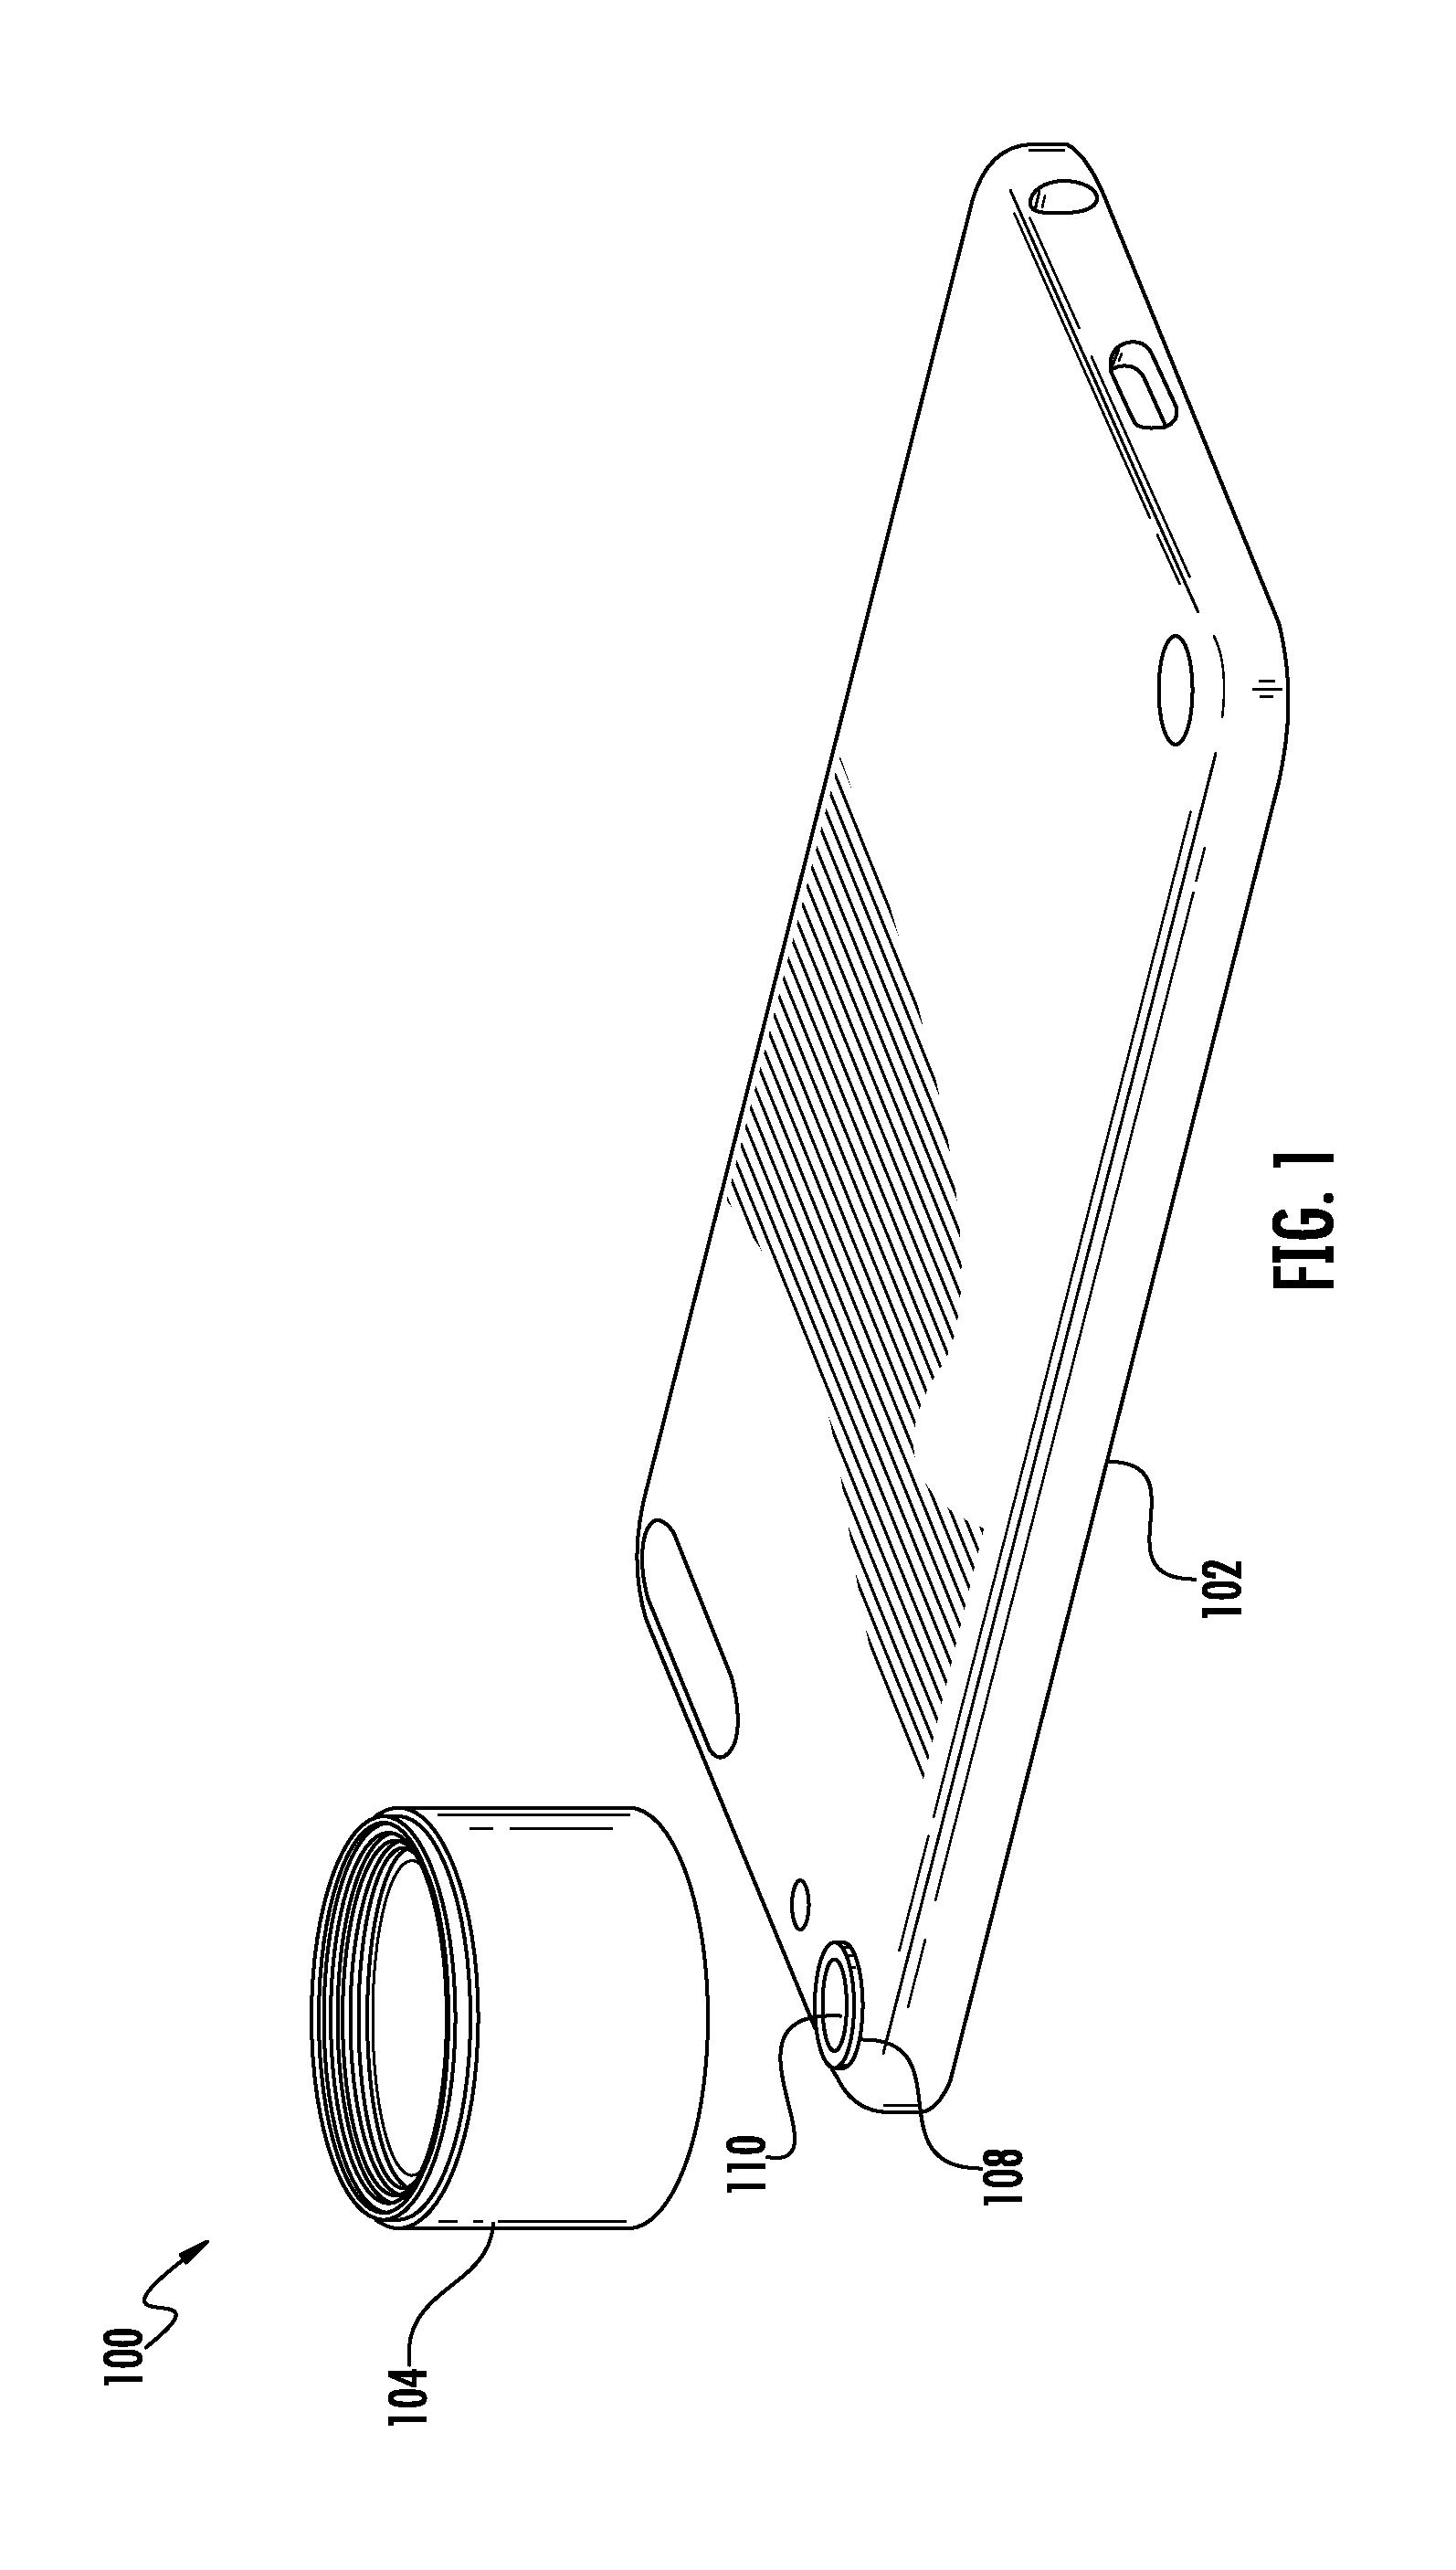 Apple Wins Patent For Interchangeable Iphone Camera Lenses